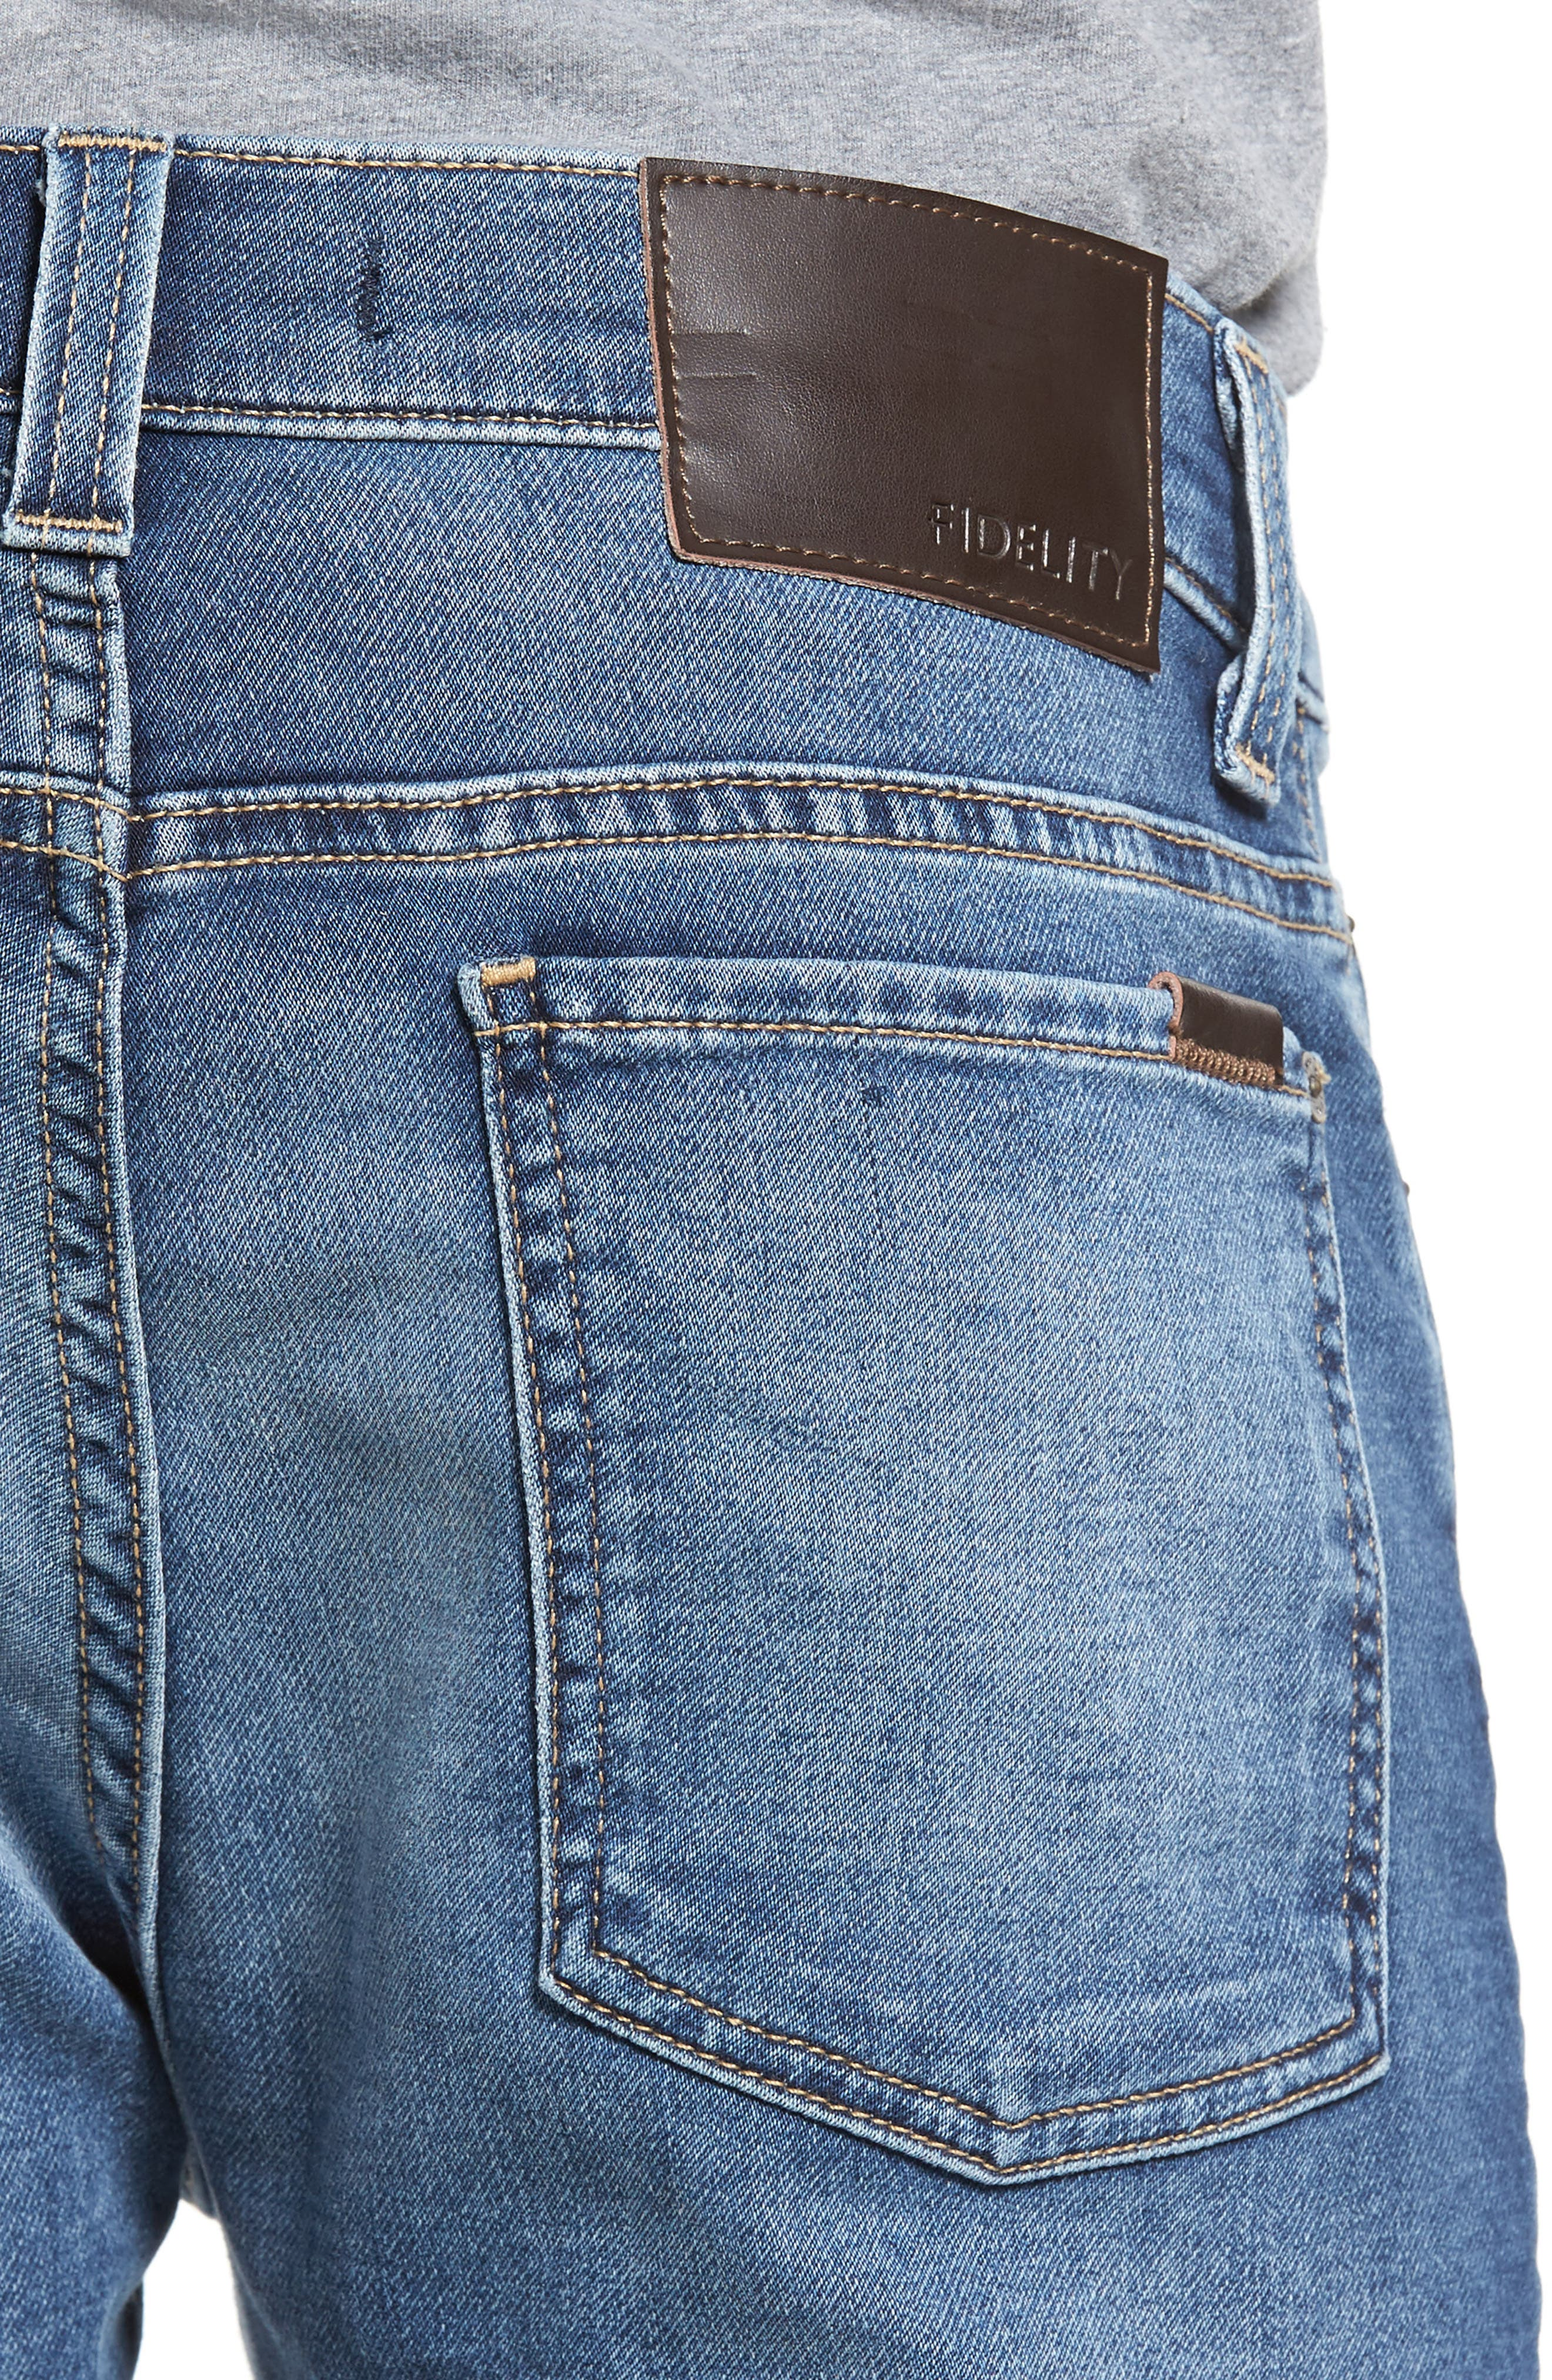 Fideliety Denim Torino Slim Fit Jeans,                             Alternate thumbnail 4, color,                             424